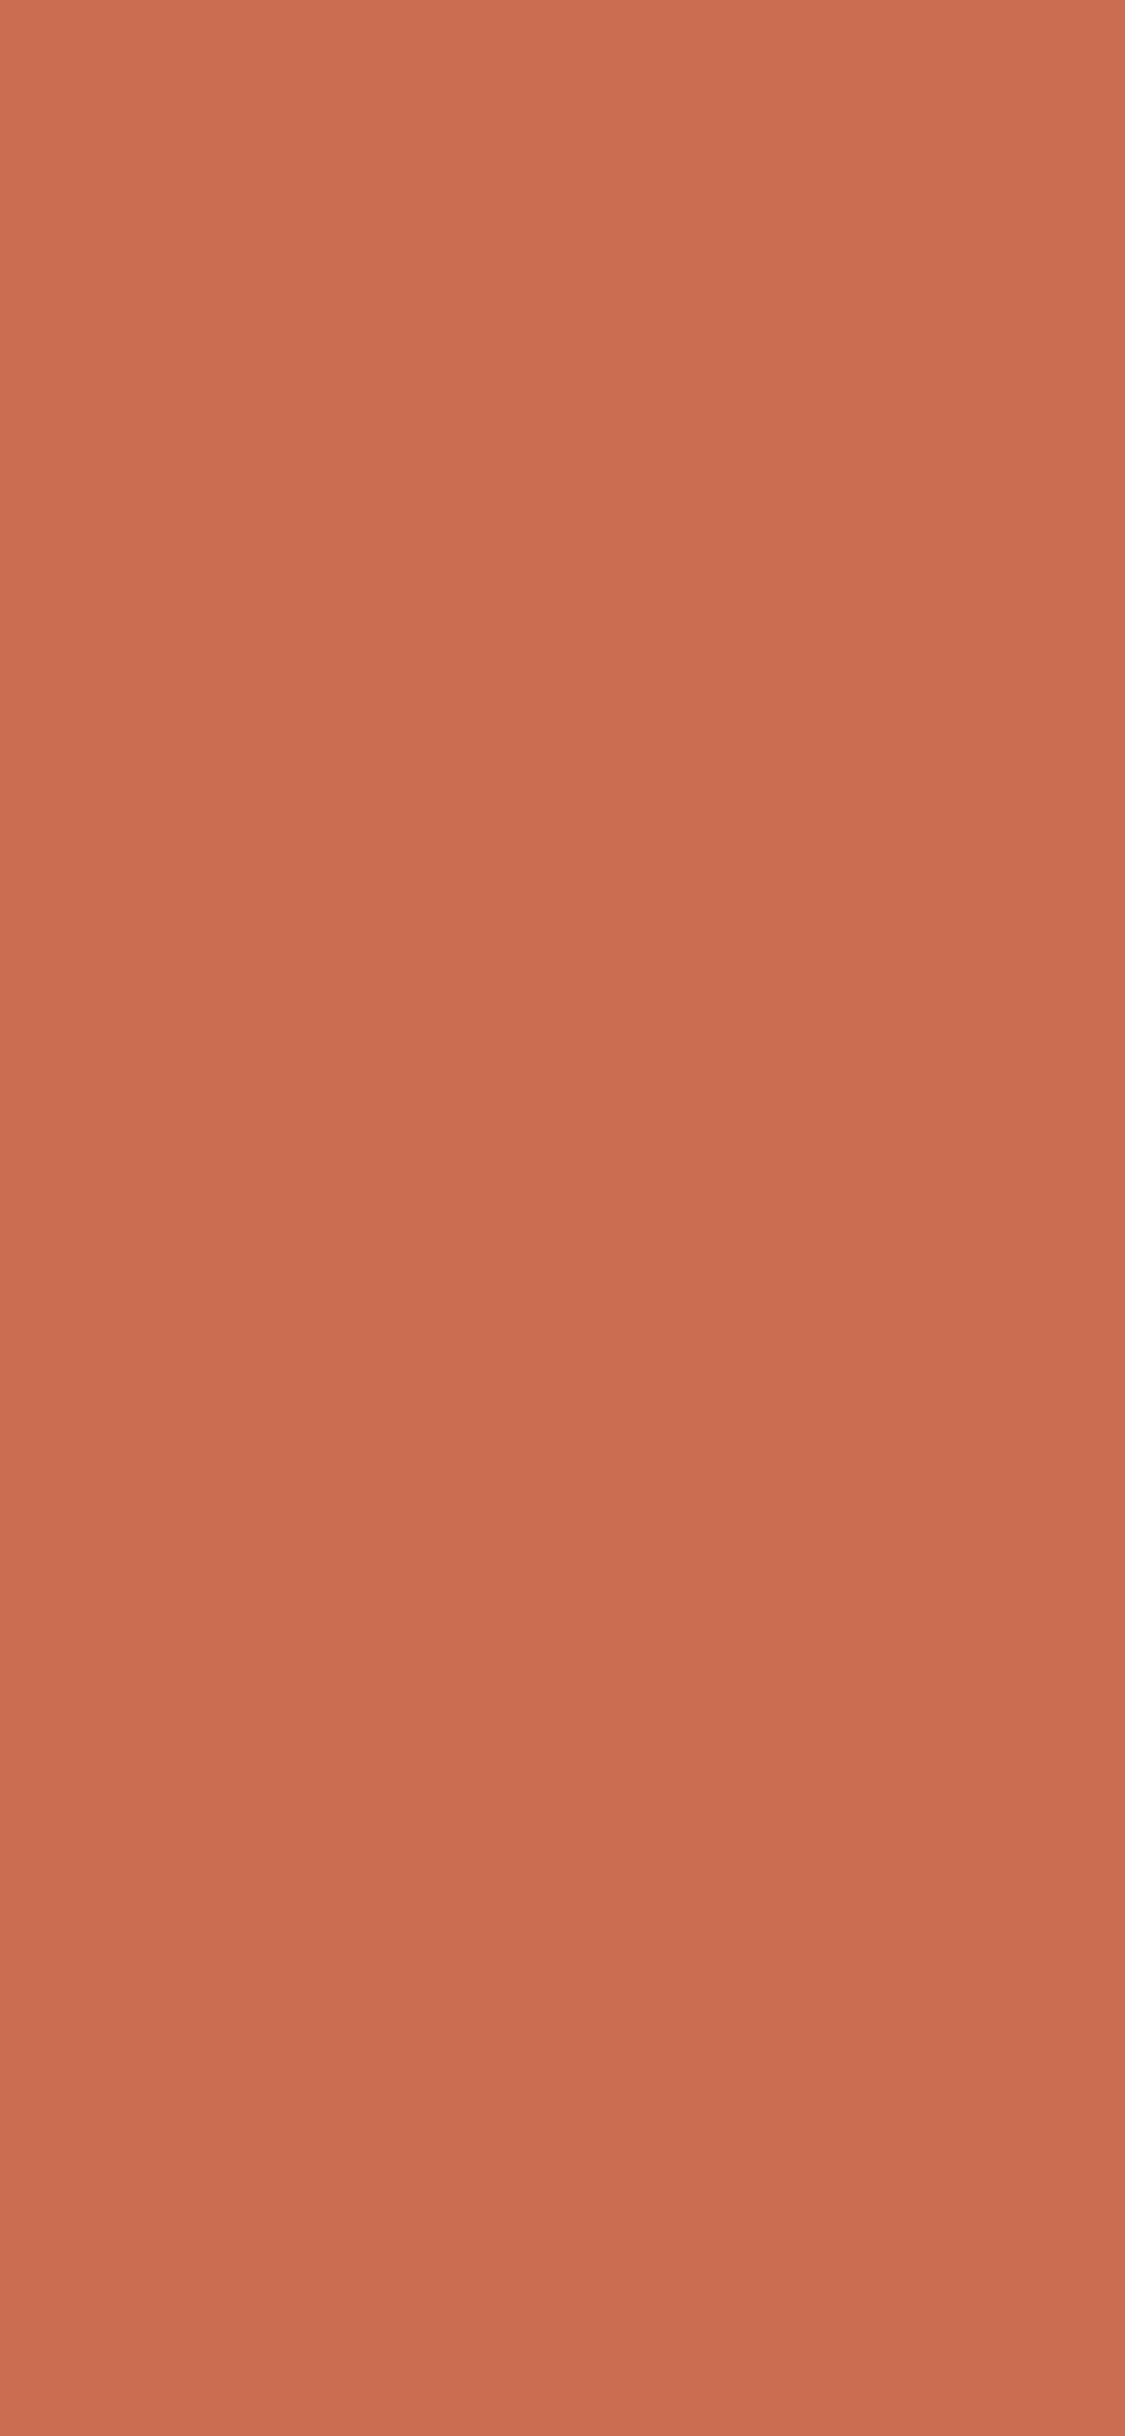 1125x2436 Copper Red Solid Color Background